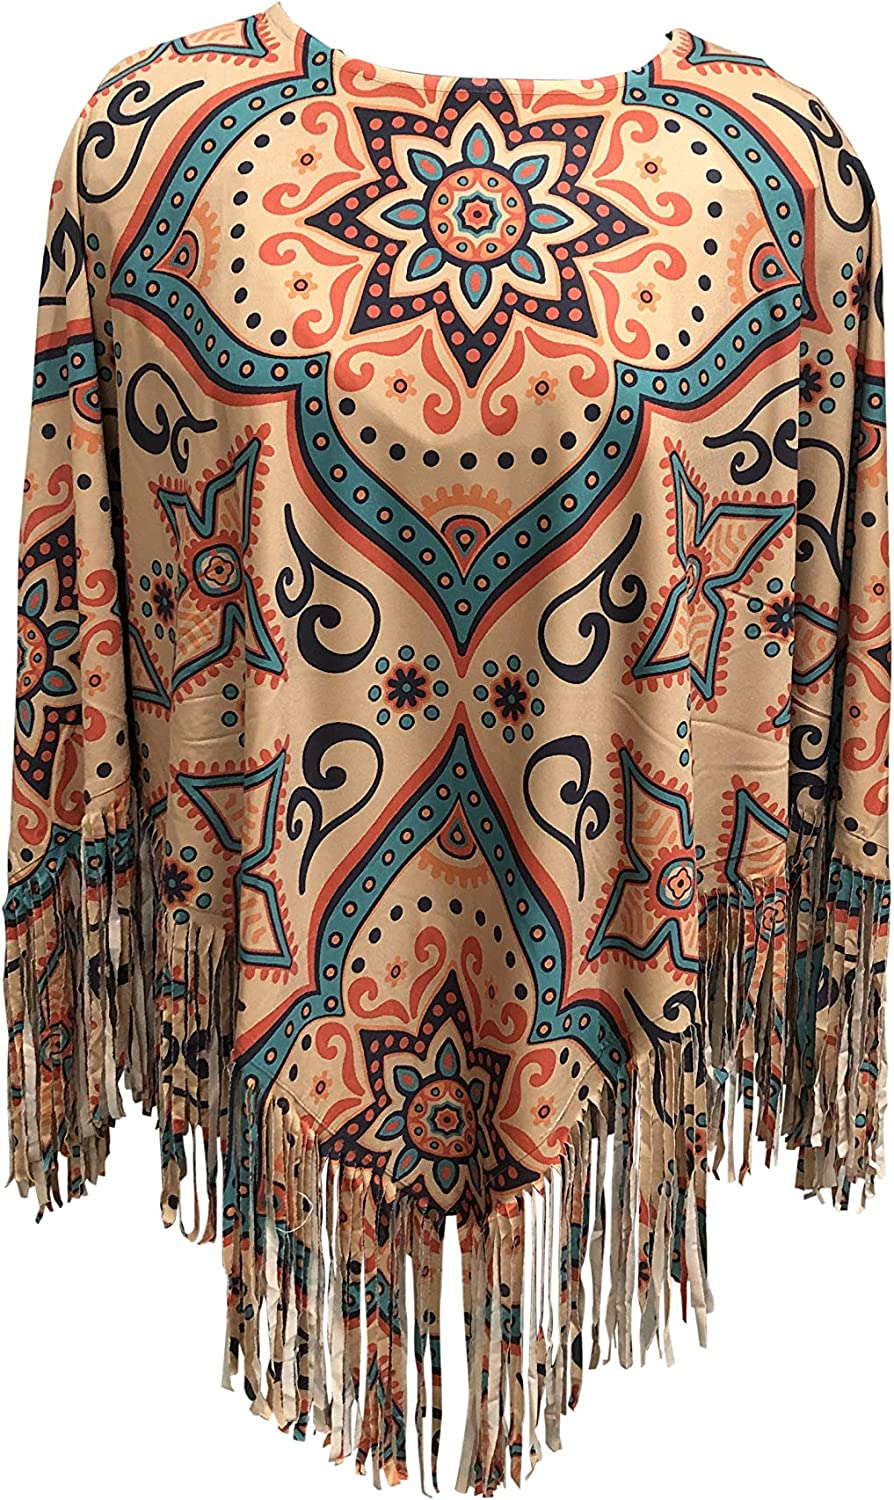 Nickanny's Poncho Pullover...